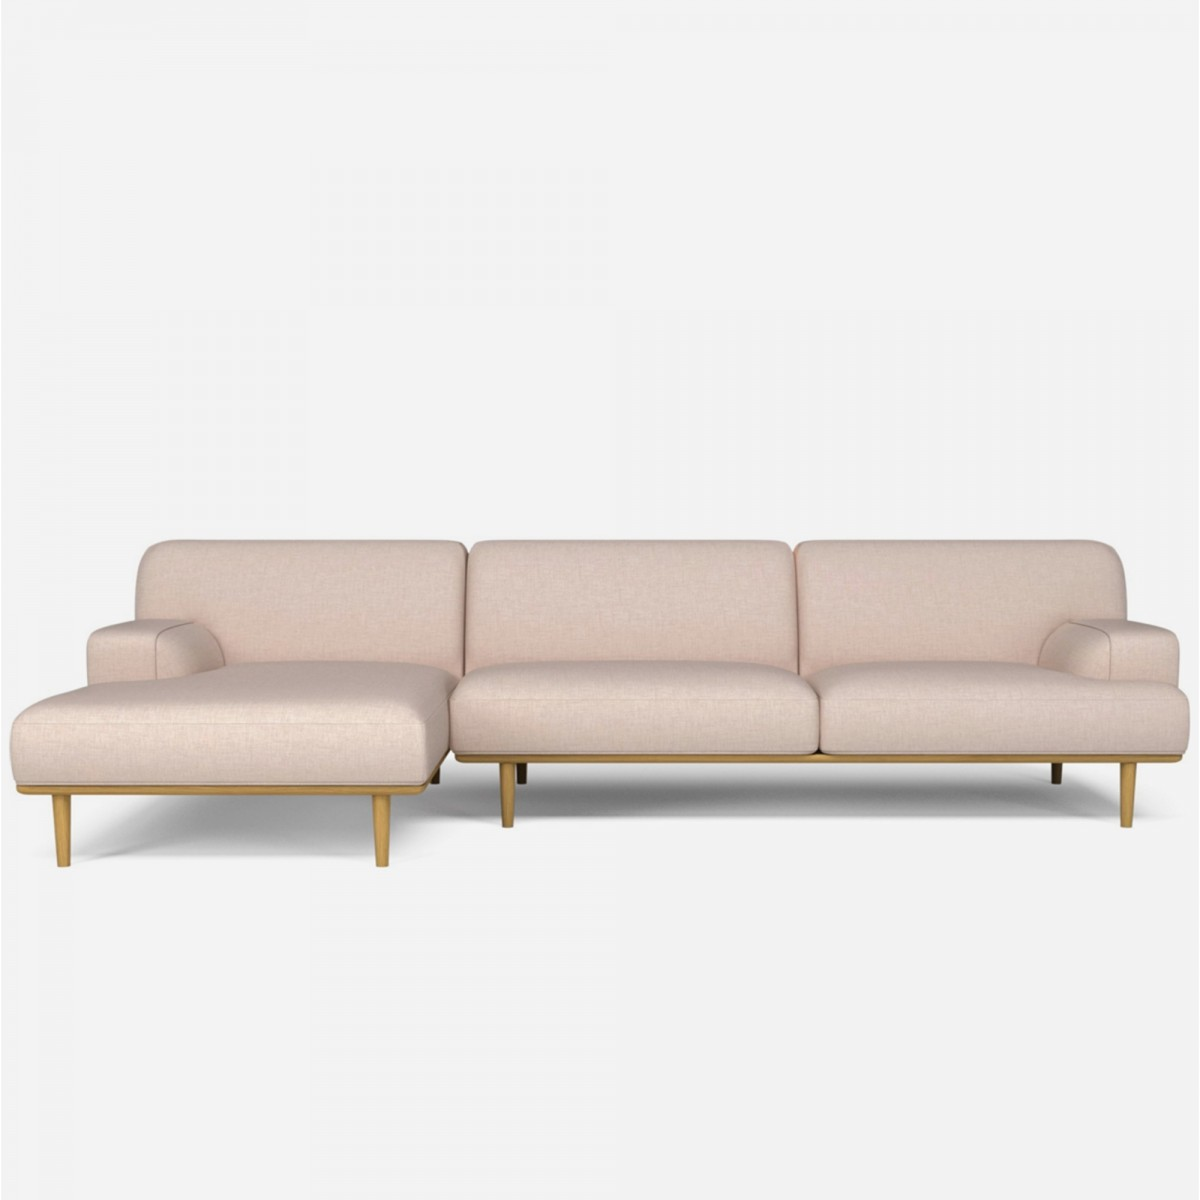 Madison with chaise longue bolia for Chaise longue furniture